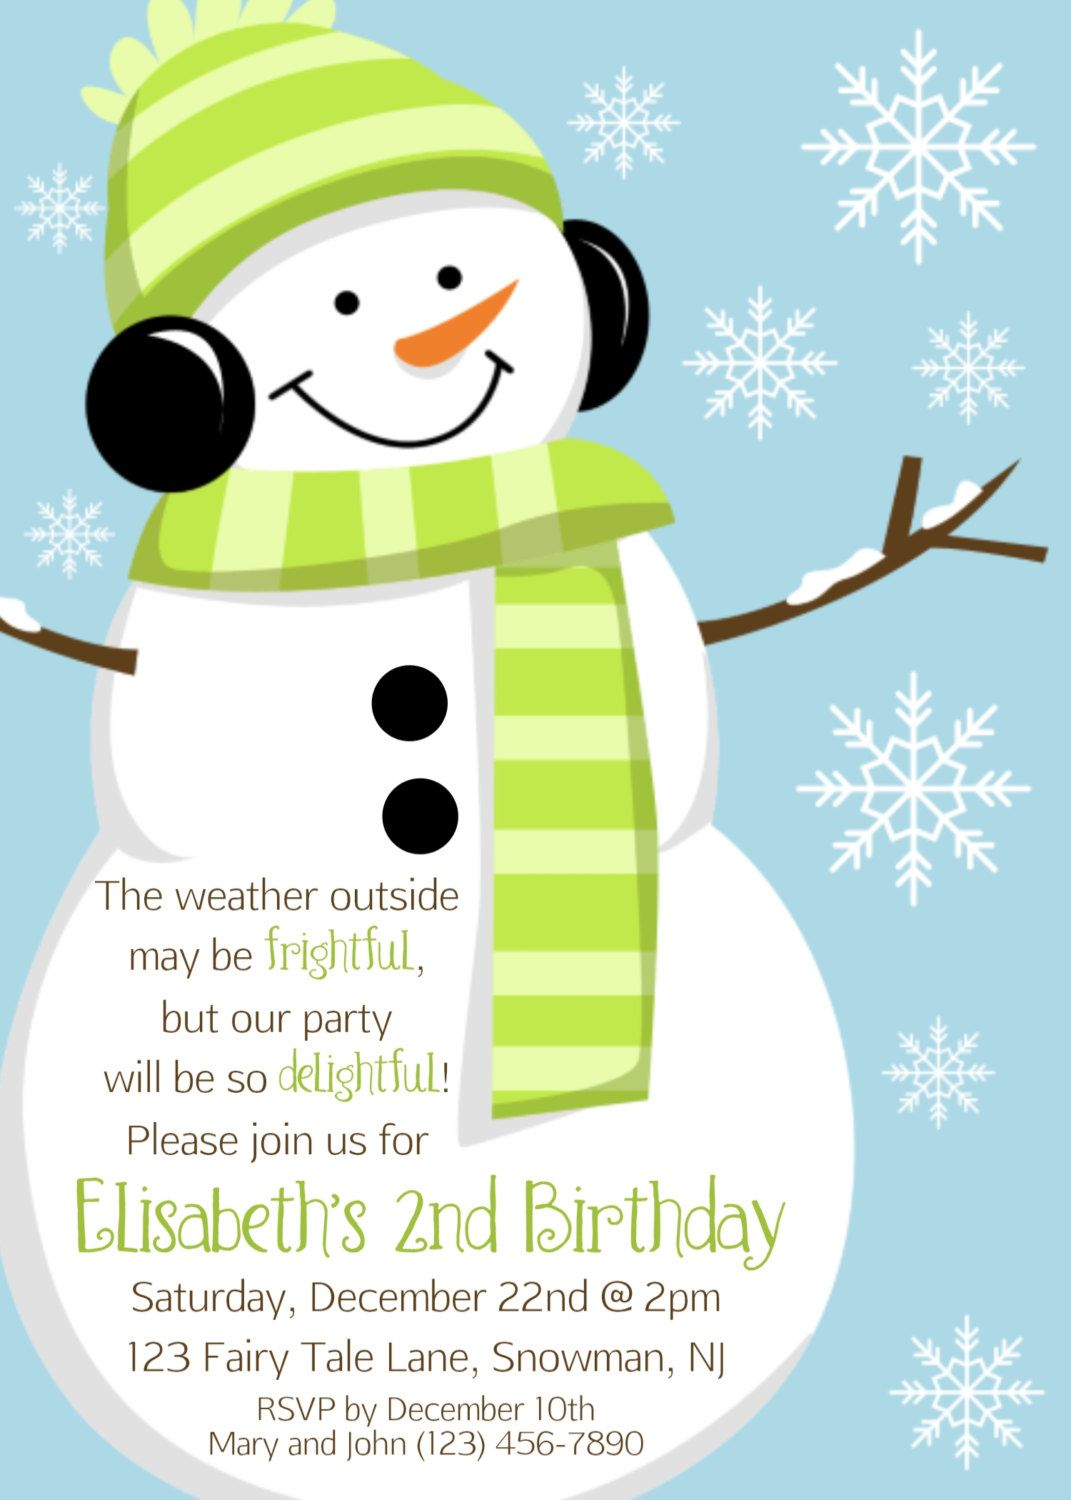 Snowman Invitation - Personalized Custom Winter Christmas Snowman ...